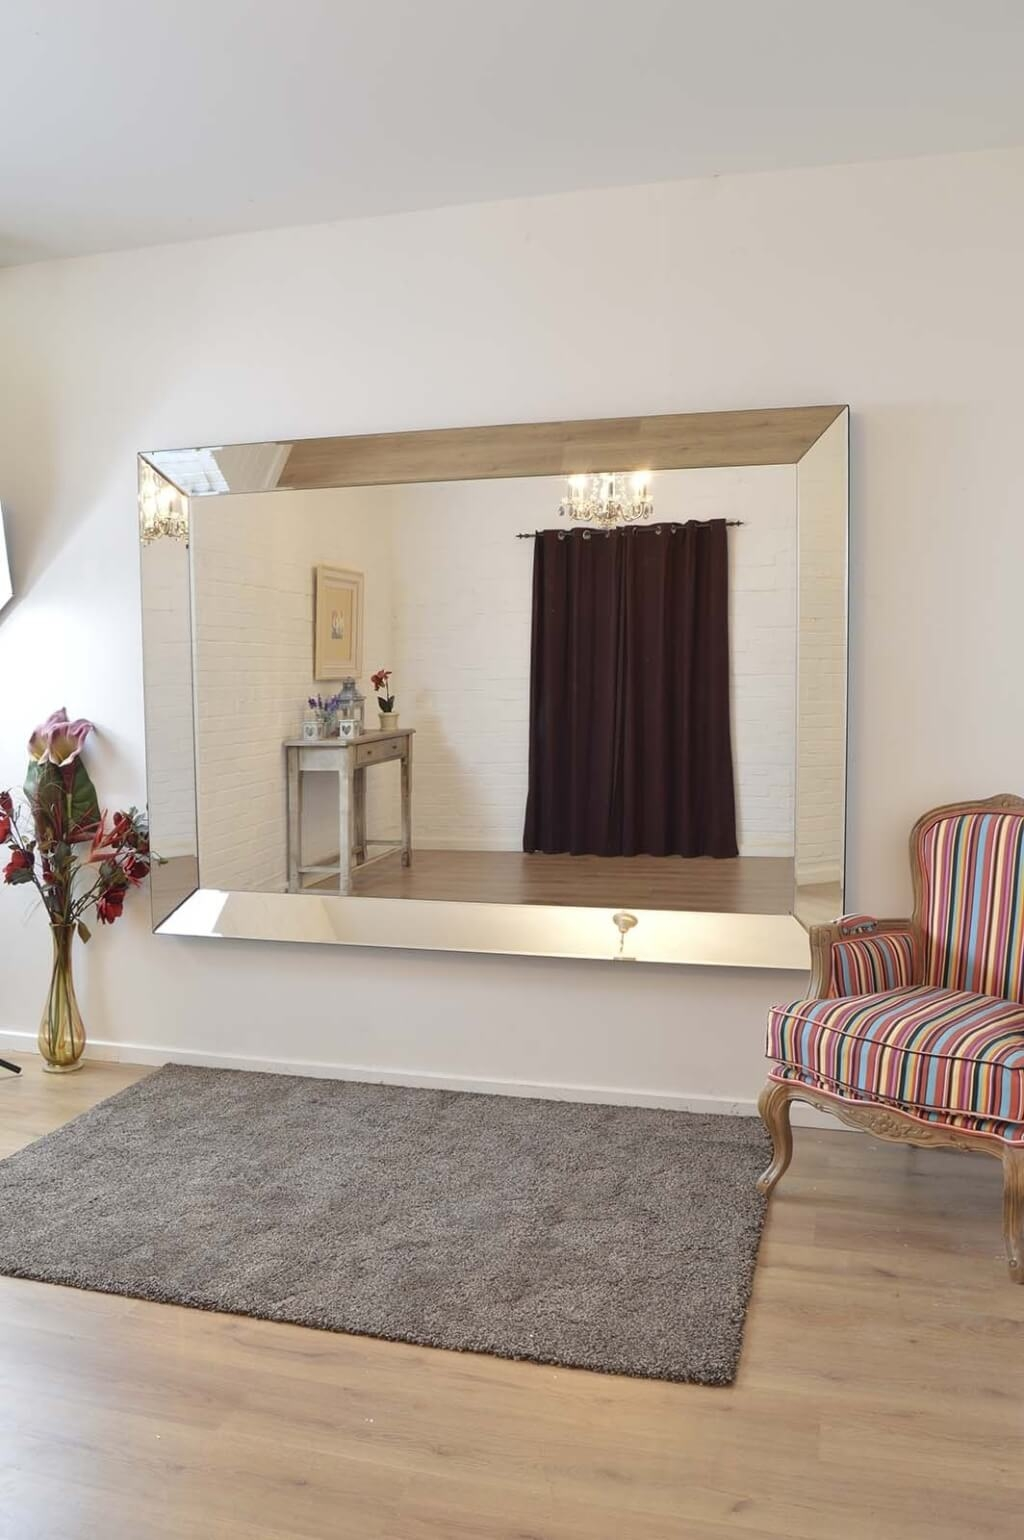 Home Decoration Astounding Frameless Antique Mirrors With With Regard To Antique Frameless Mirrors (View 6 of 15)